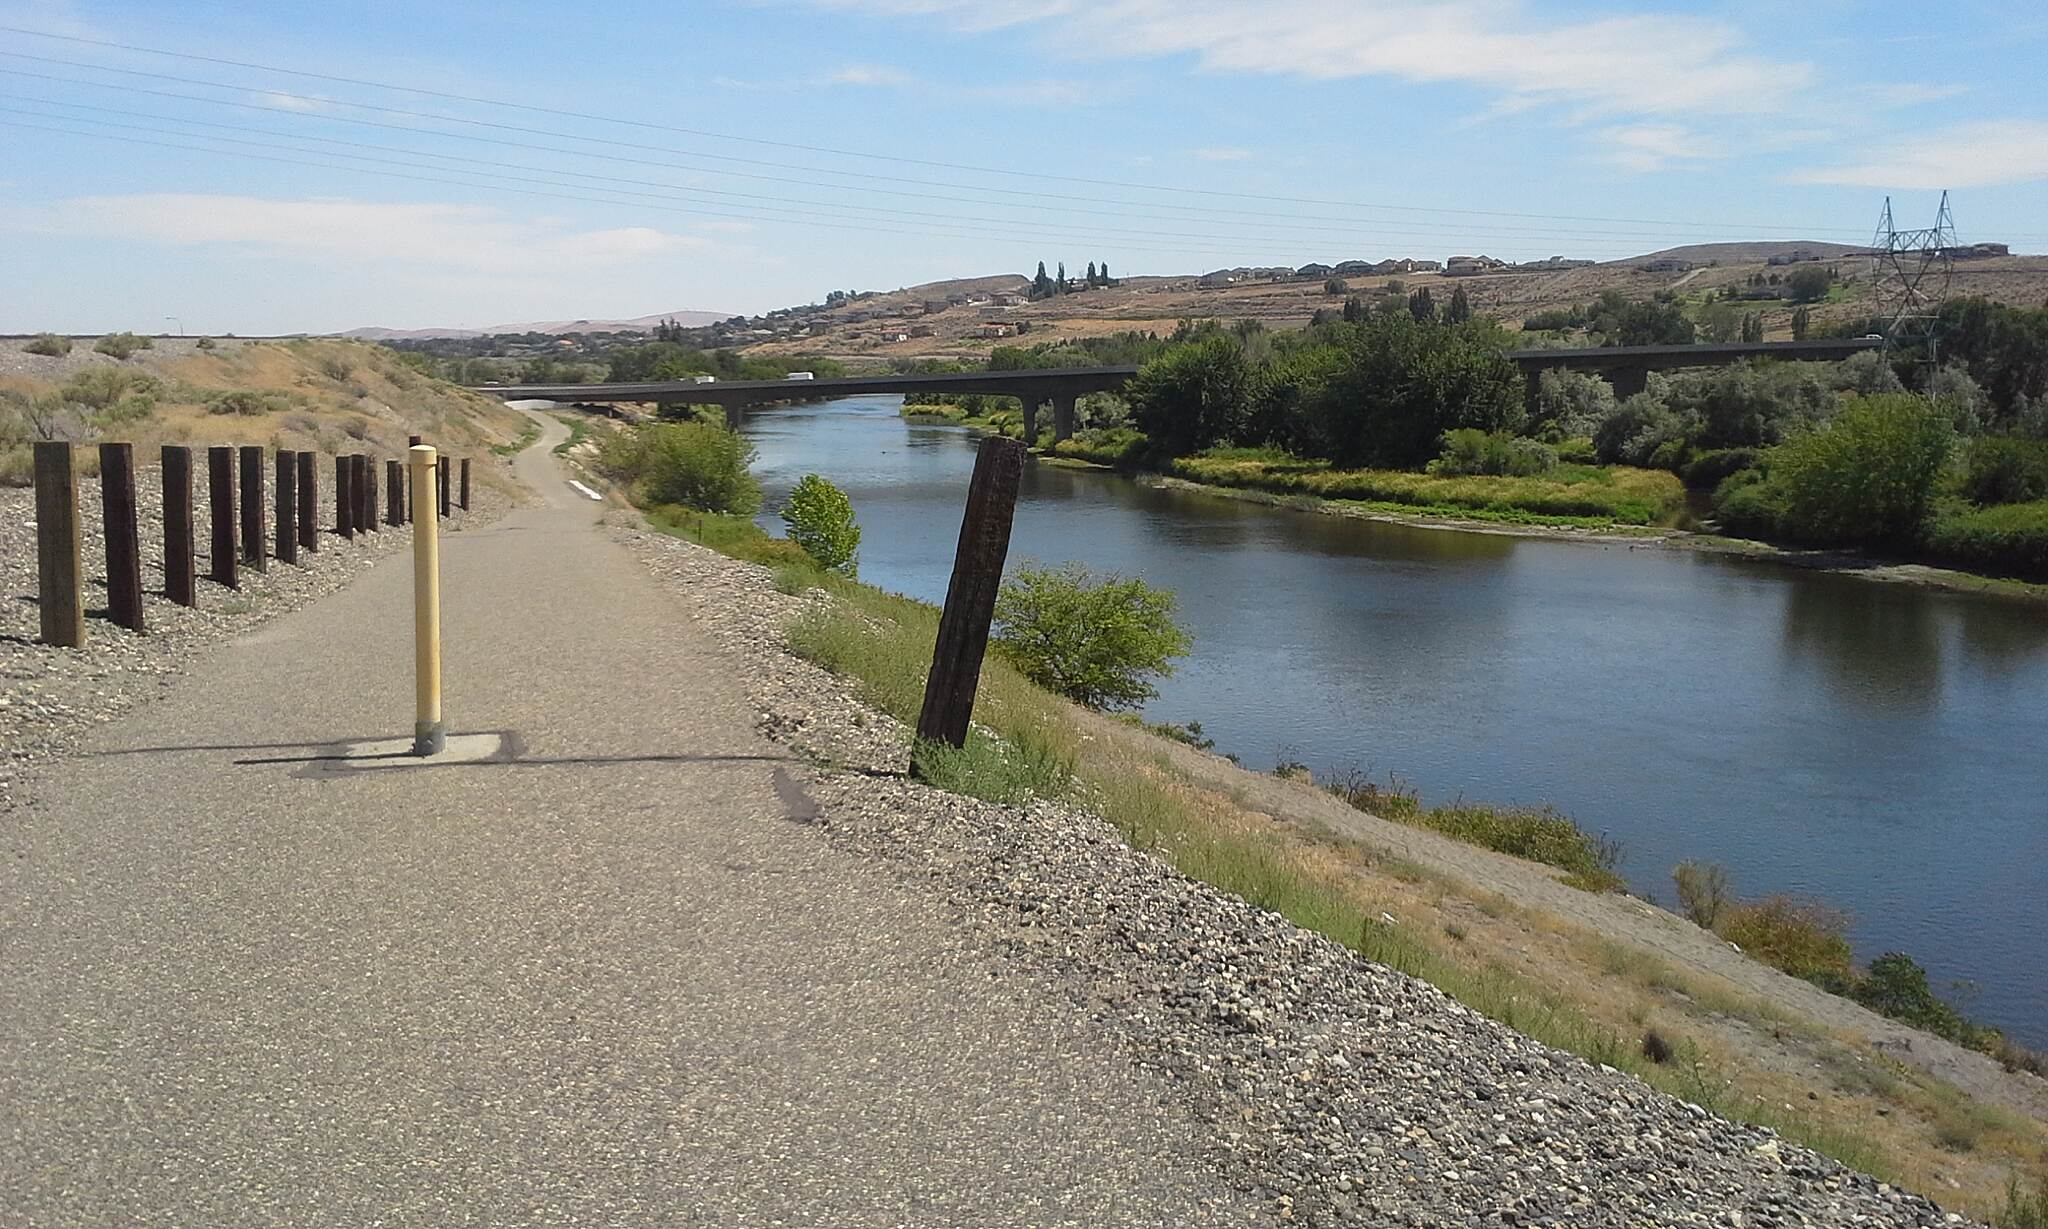 ByPass Shelterbelt Along the Yakima River Between Chamna Reserve and Duportail Streets.